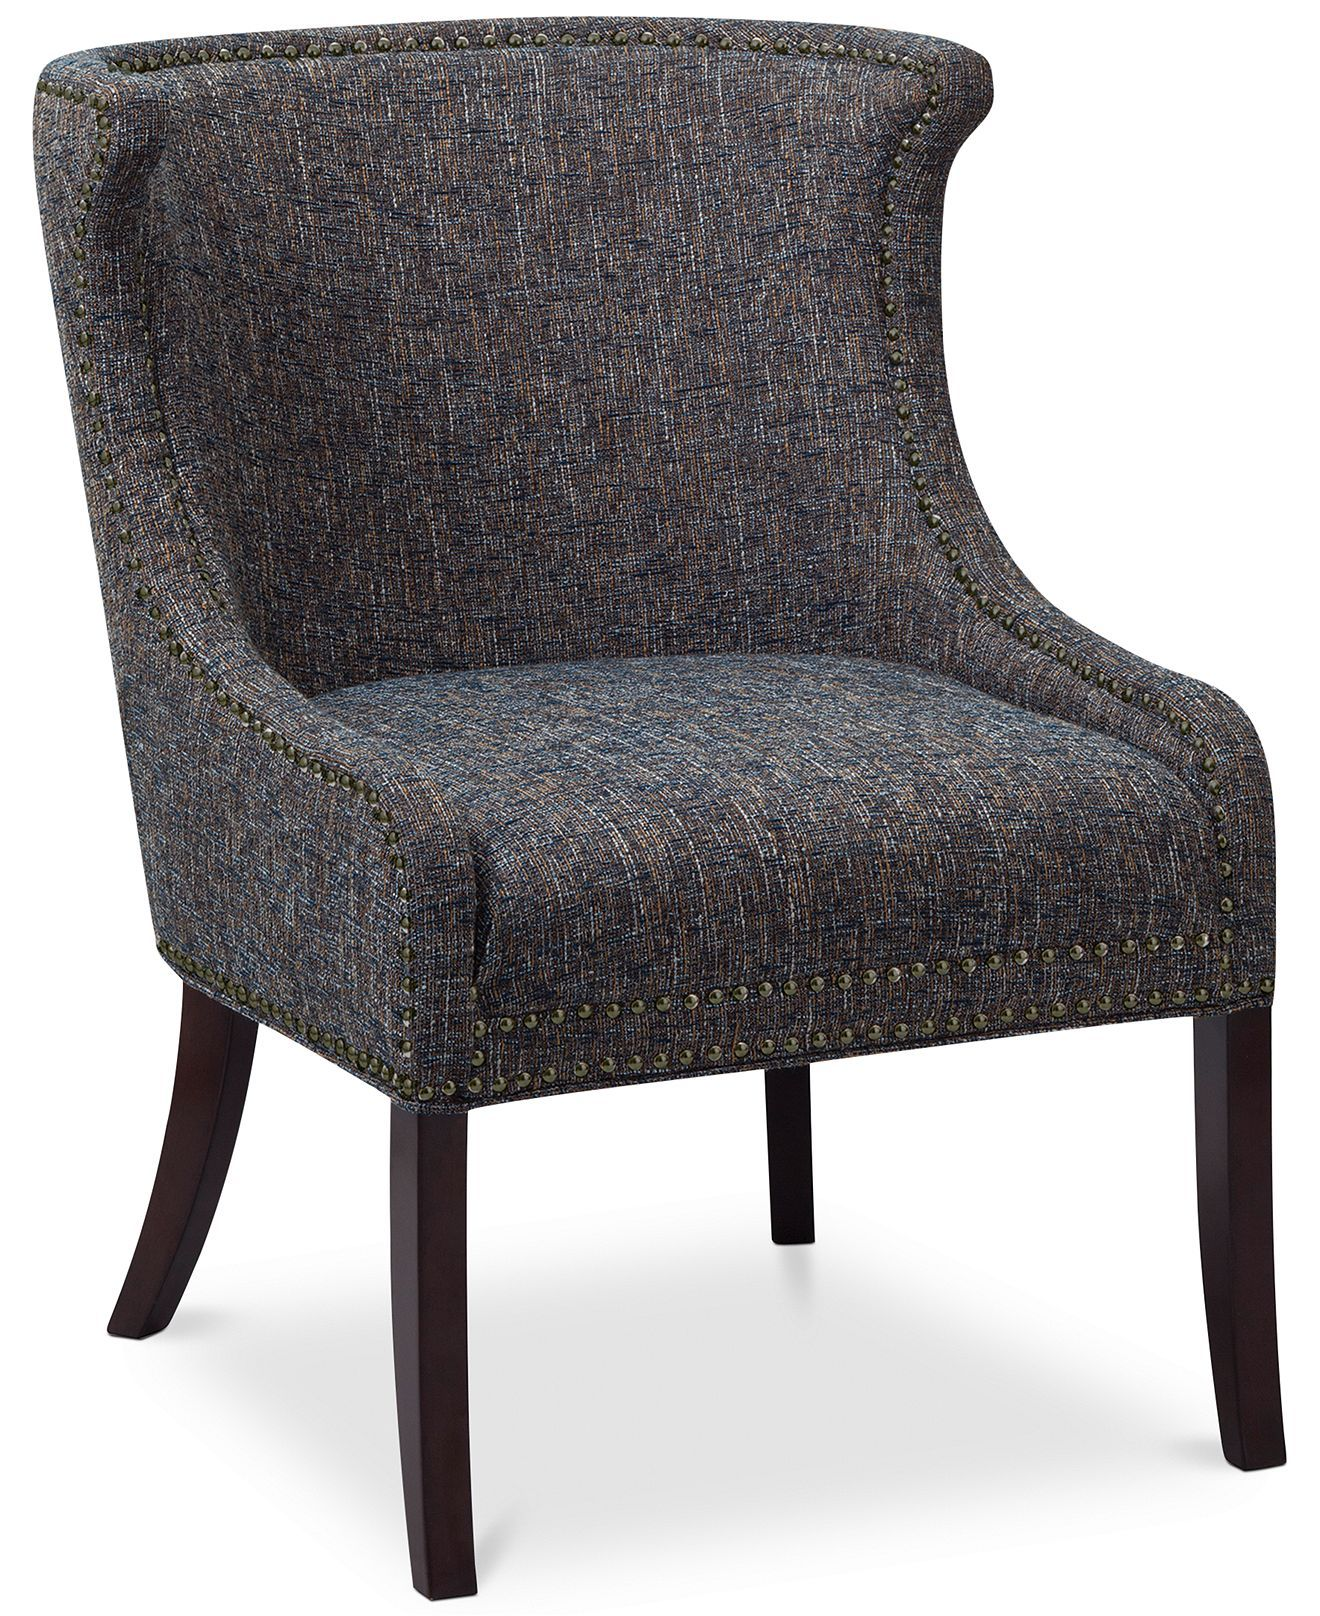 Apartment Arm Chair Accent Placement Ideas: Marissa Fabric Accent Chair, Direct Ship